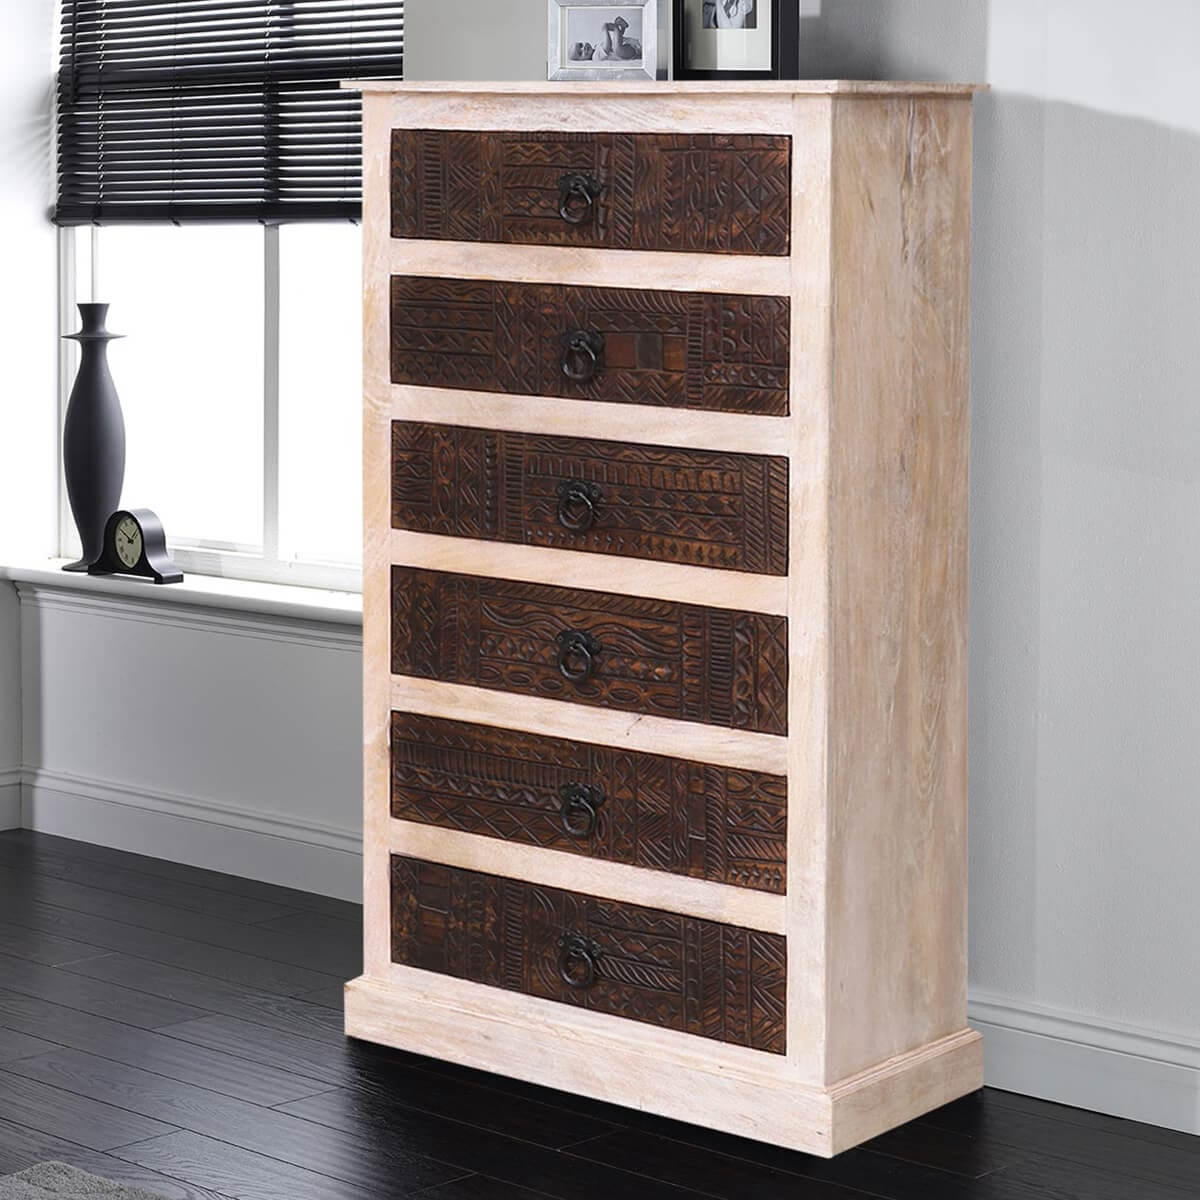 Bingen Reclaimed Wood Carved 6 Drawers Tall Dresser